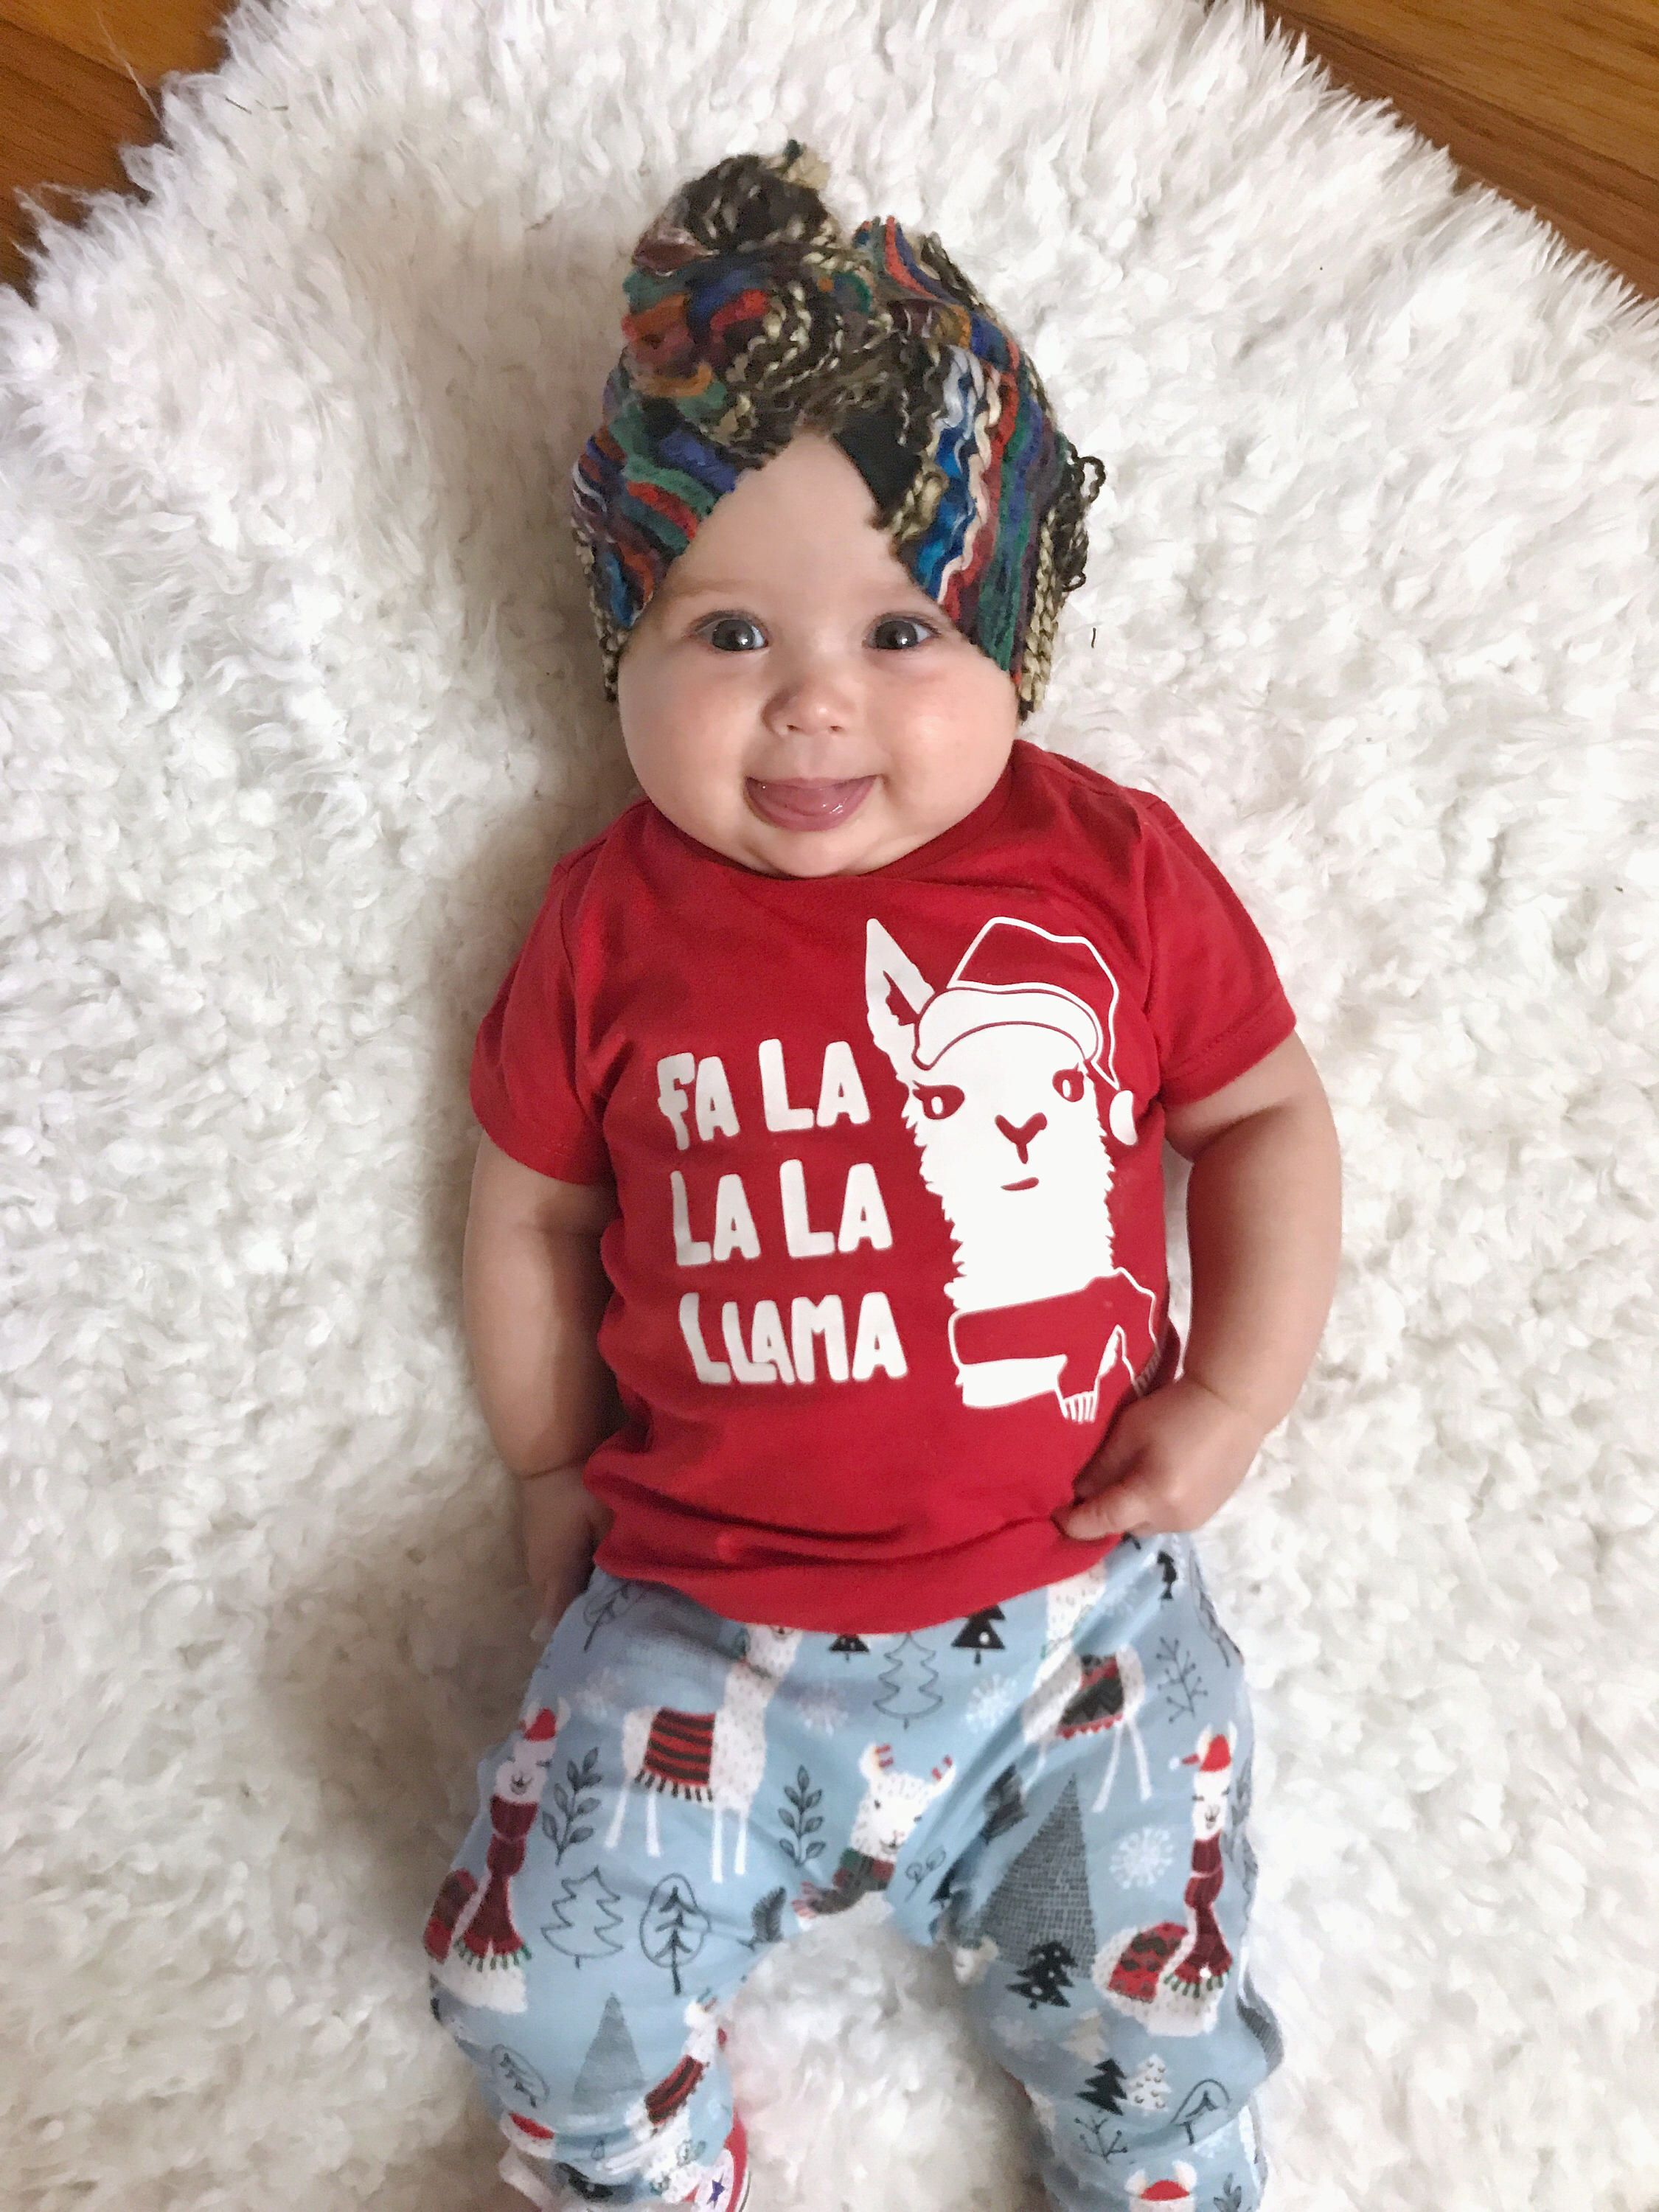 8b177153 Excited to share this item from my #etsy shop: Kids Christmas shirt, funny  Christmas shirt, fa la llama, christmas llama shirt, Christmas shirt for  kids